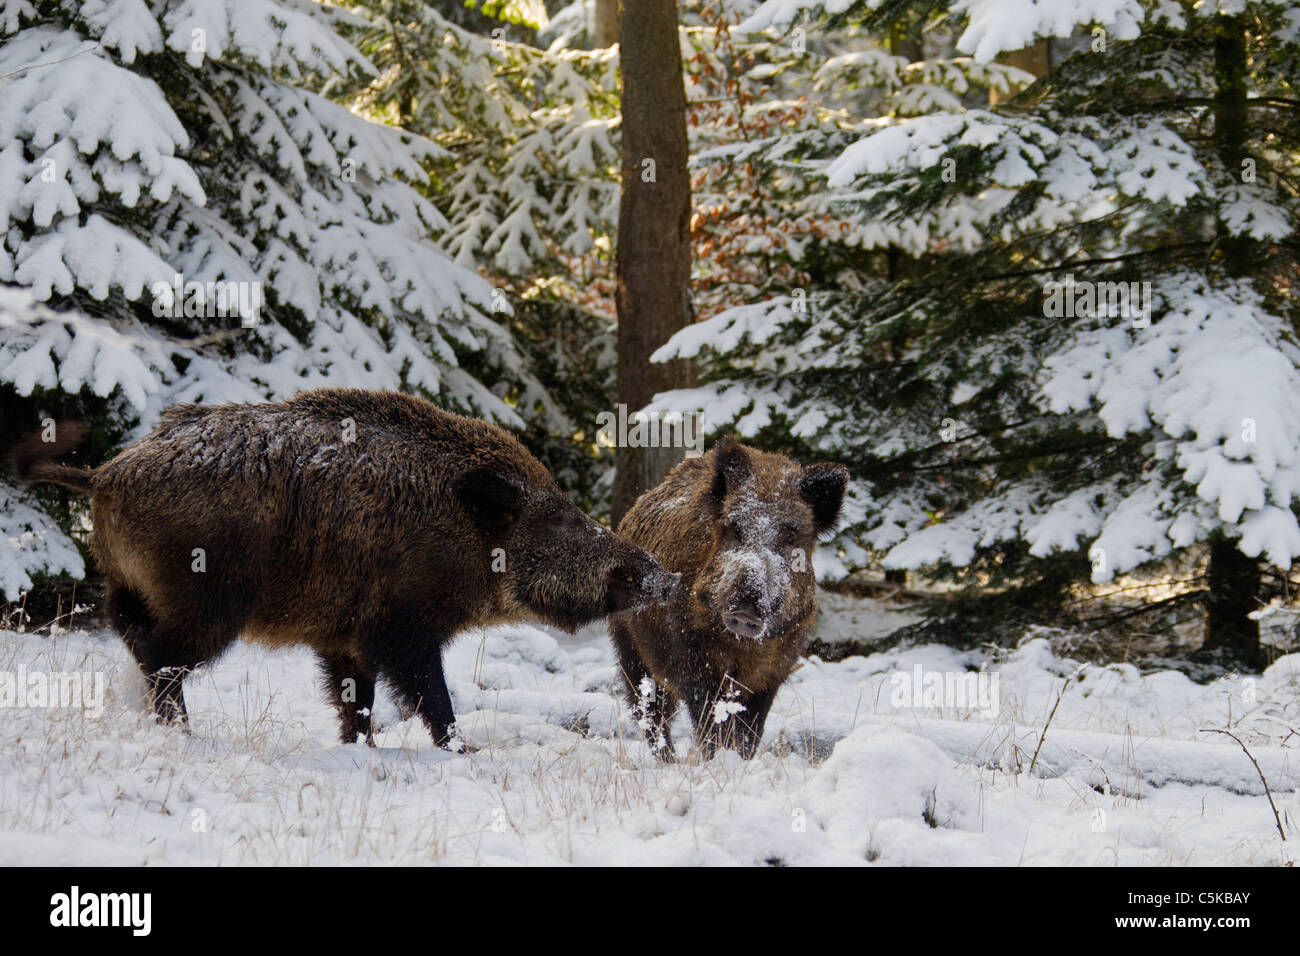 Two Wild boars (Sus scrofa) meeting in pine forest in the snow in winter, Germany - Stock Image